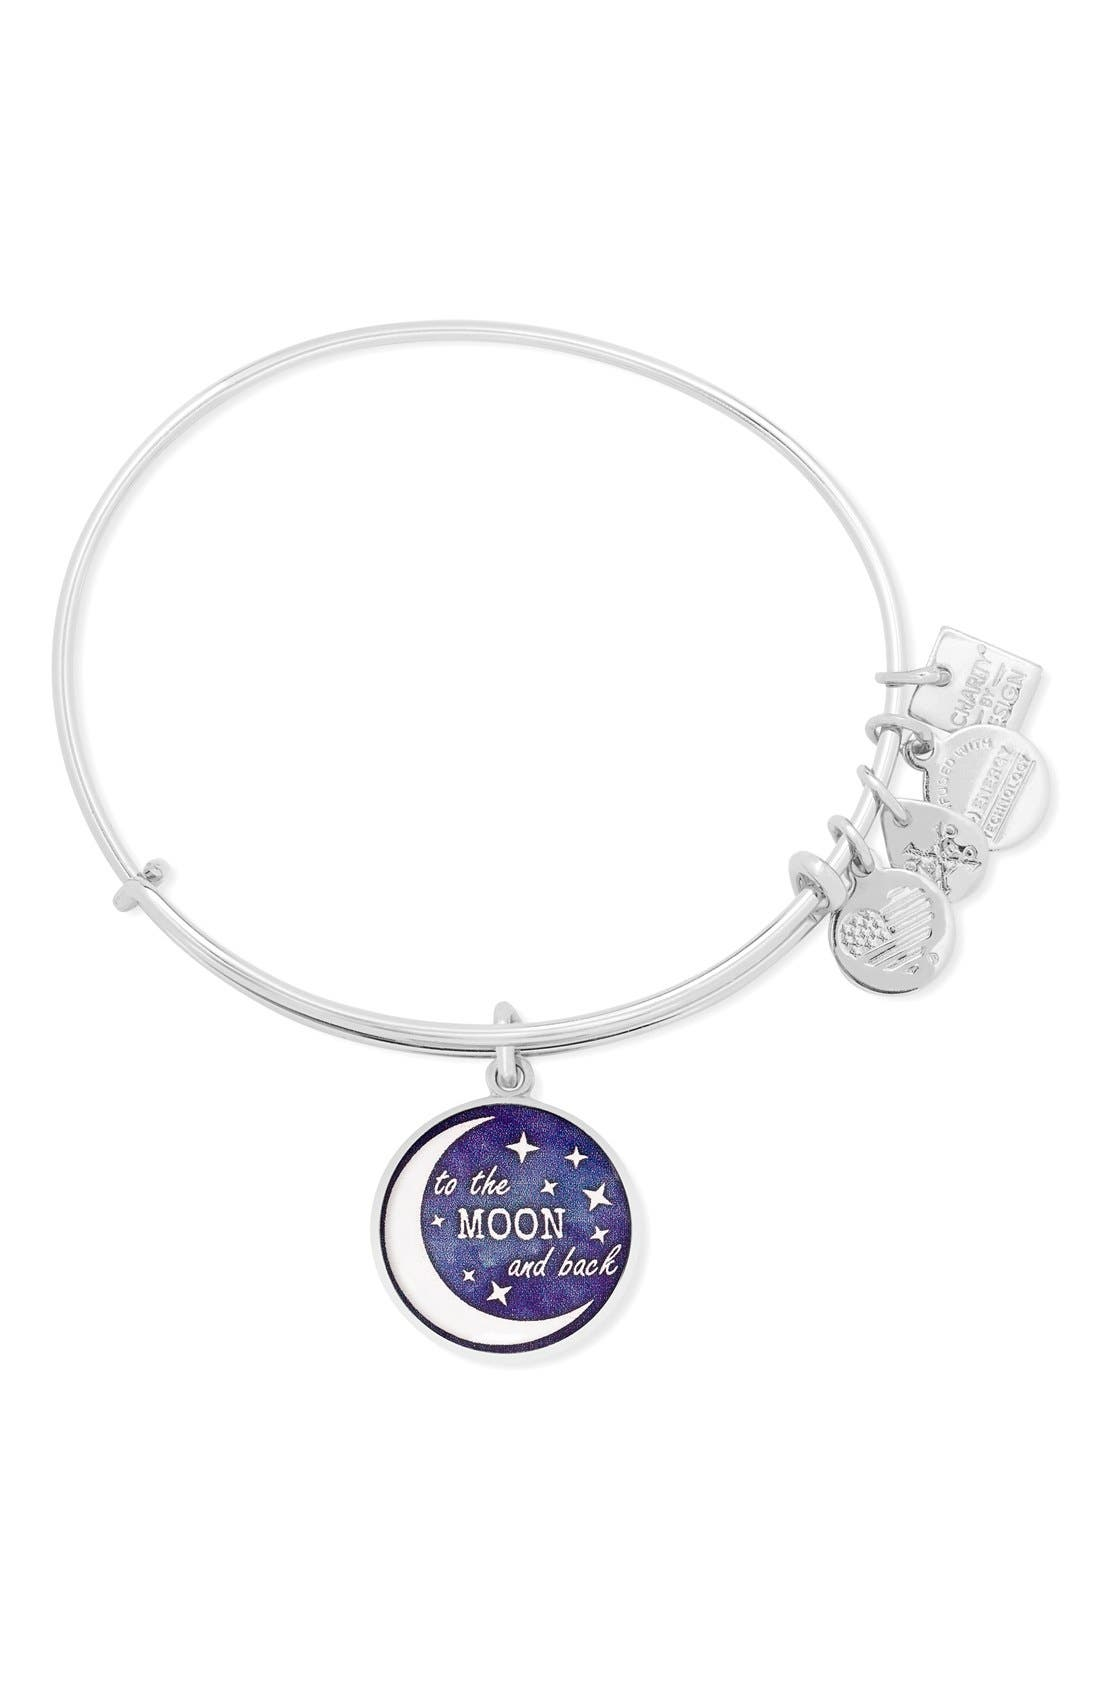 Stellar Love 'To the Moon and Back' Adjustable Wire Bangle,                             Main thumbnail 1, color,                             040